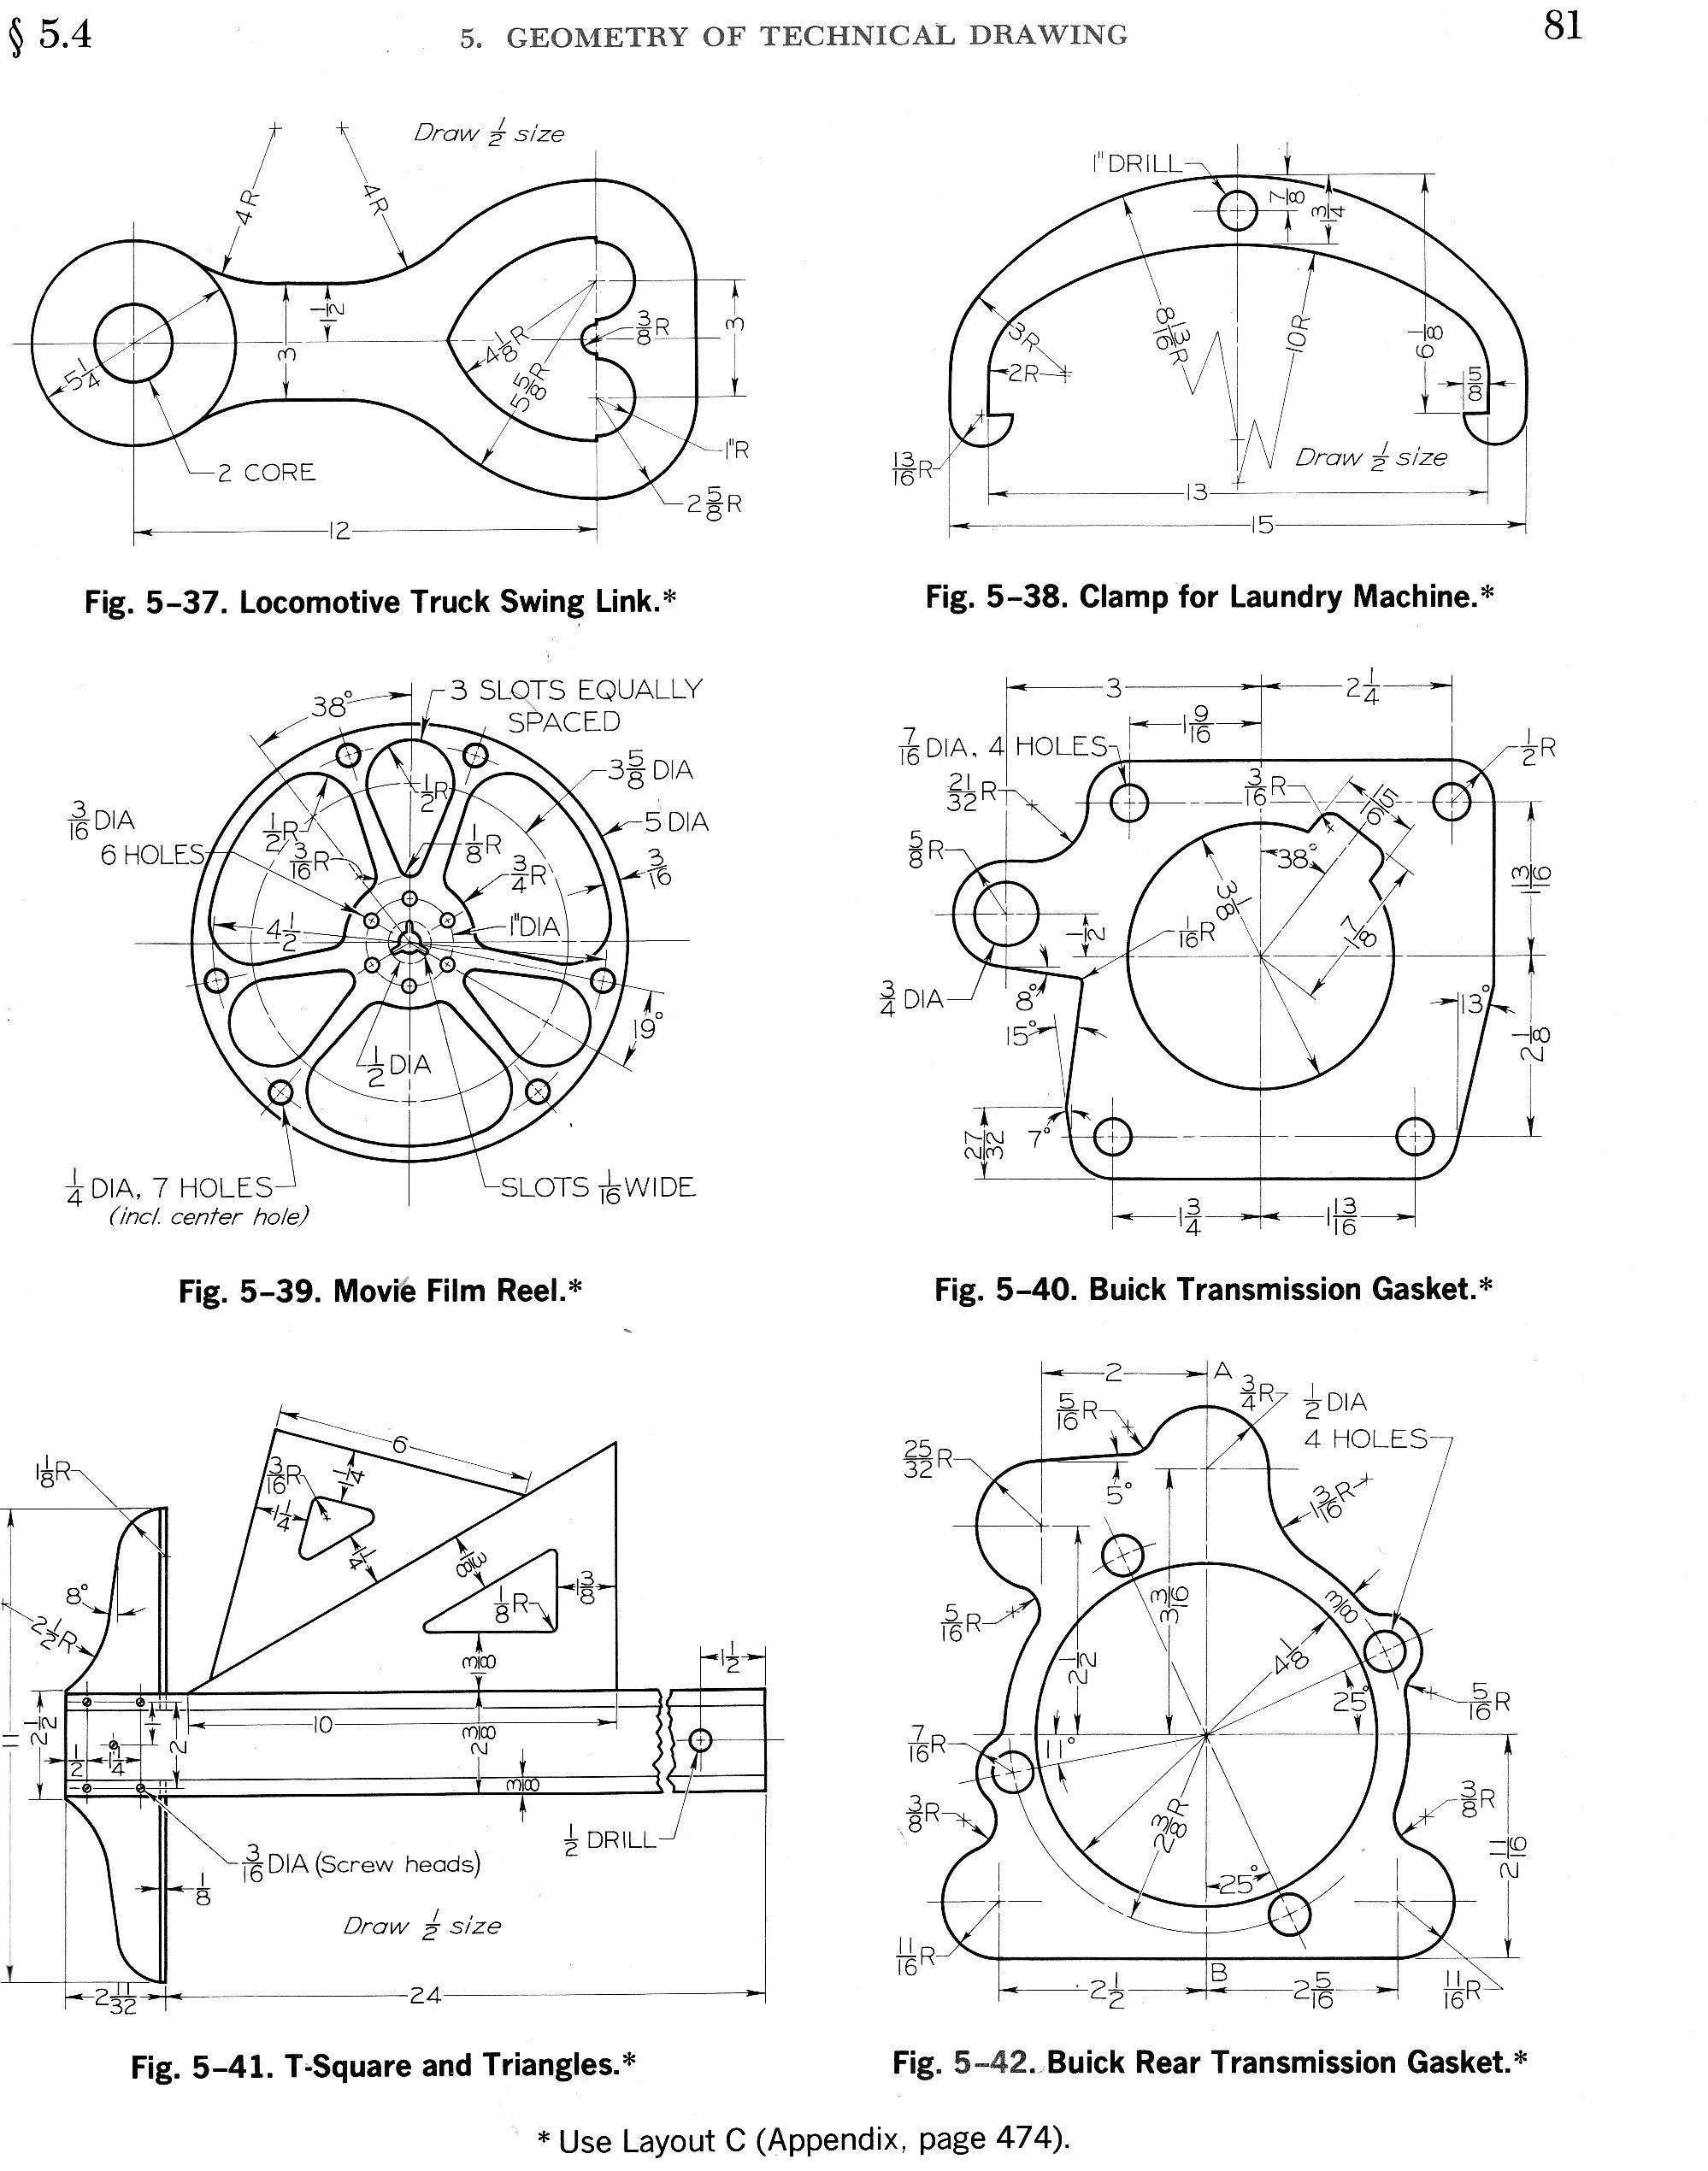 Engineering Drawing Symbols And Their Meanings At